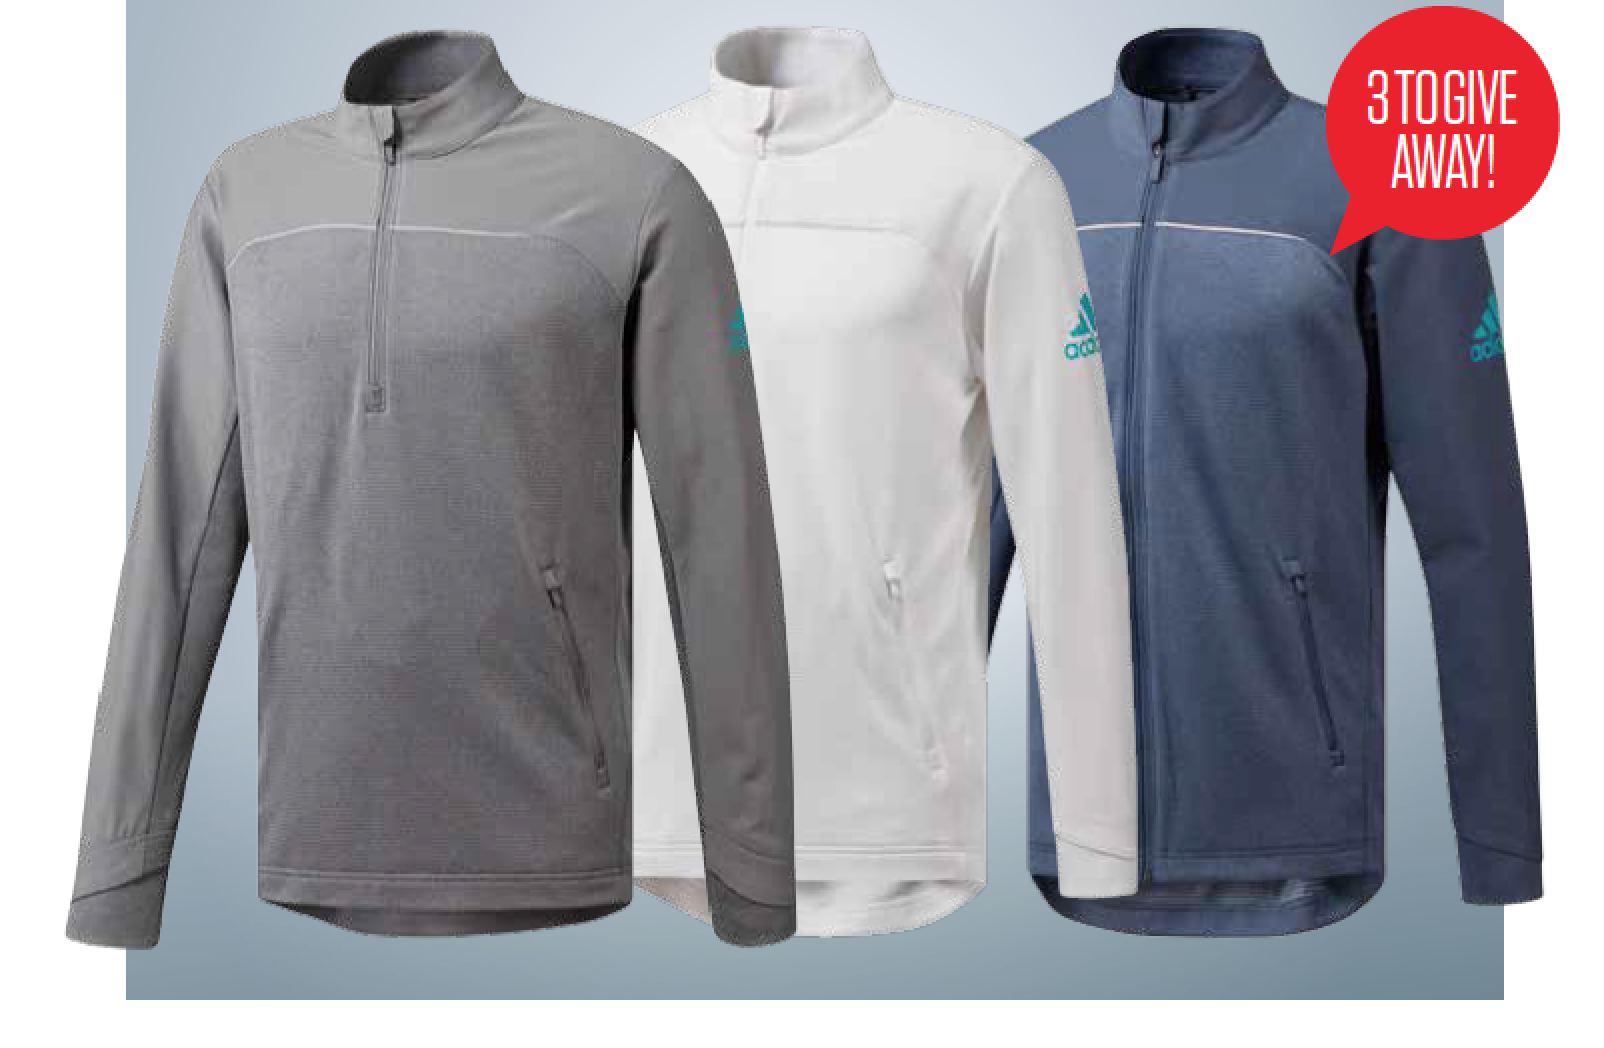 WIN AN ADIDAS GO-TO JACKET sweepstakes